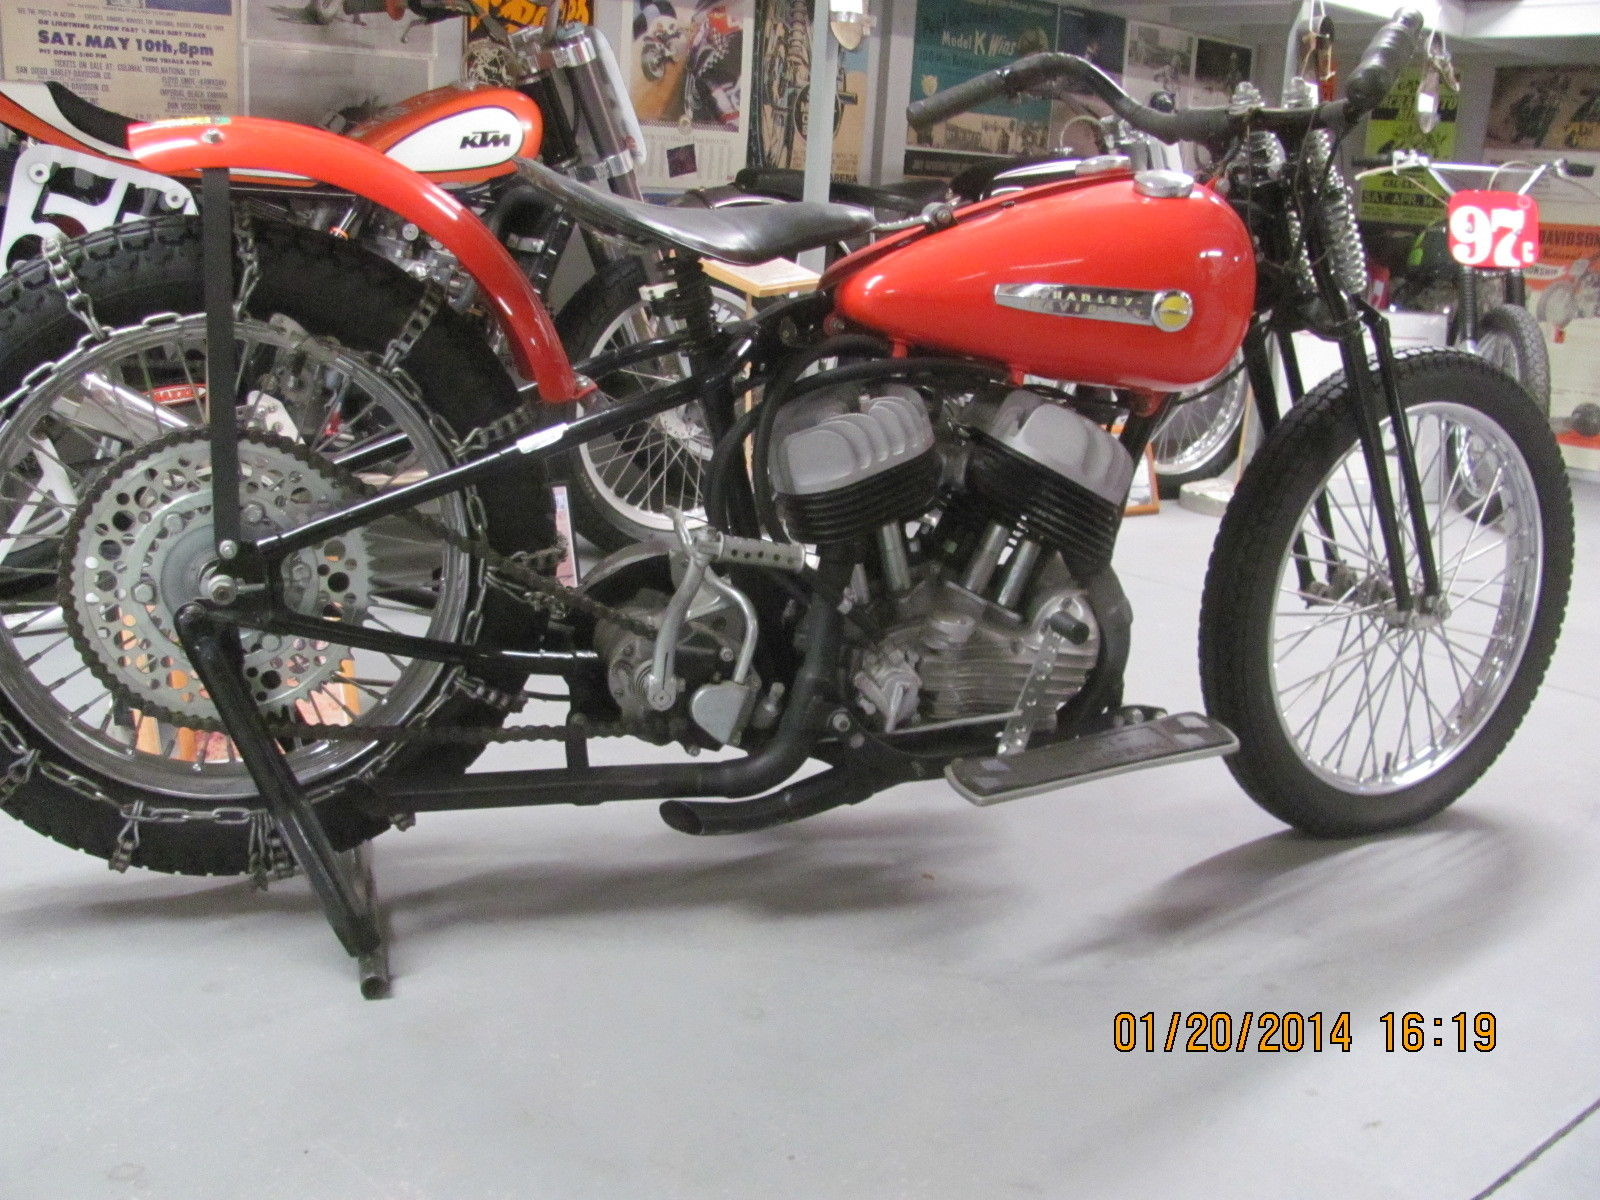 This 1950 Wr Hill Climber Is A Real Piece Of Documented